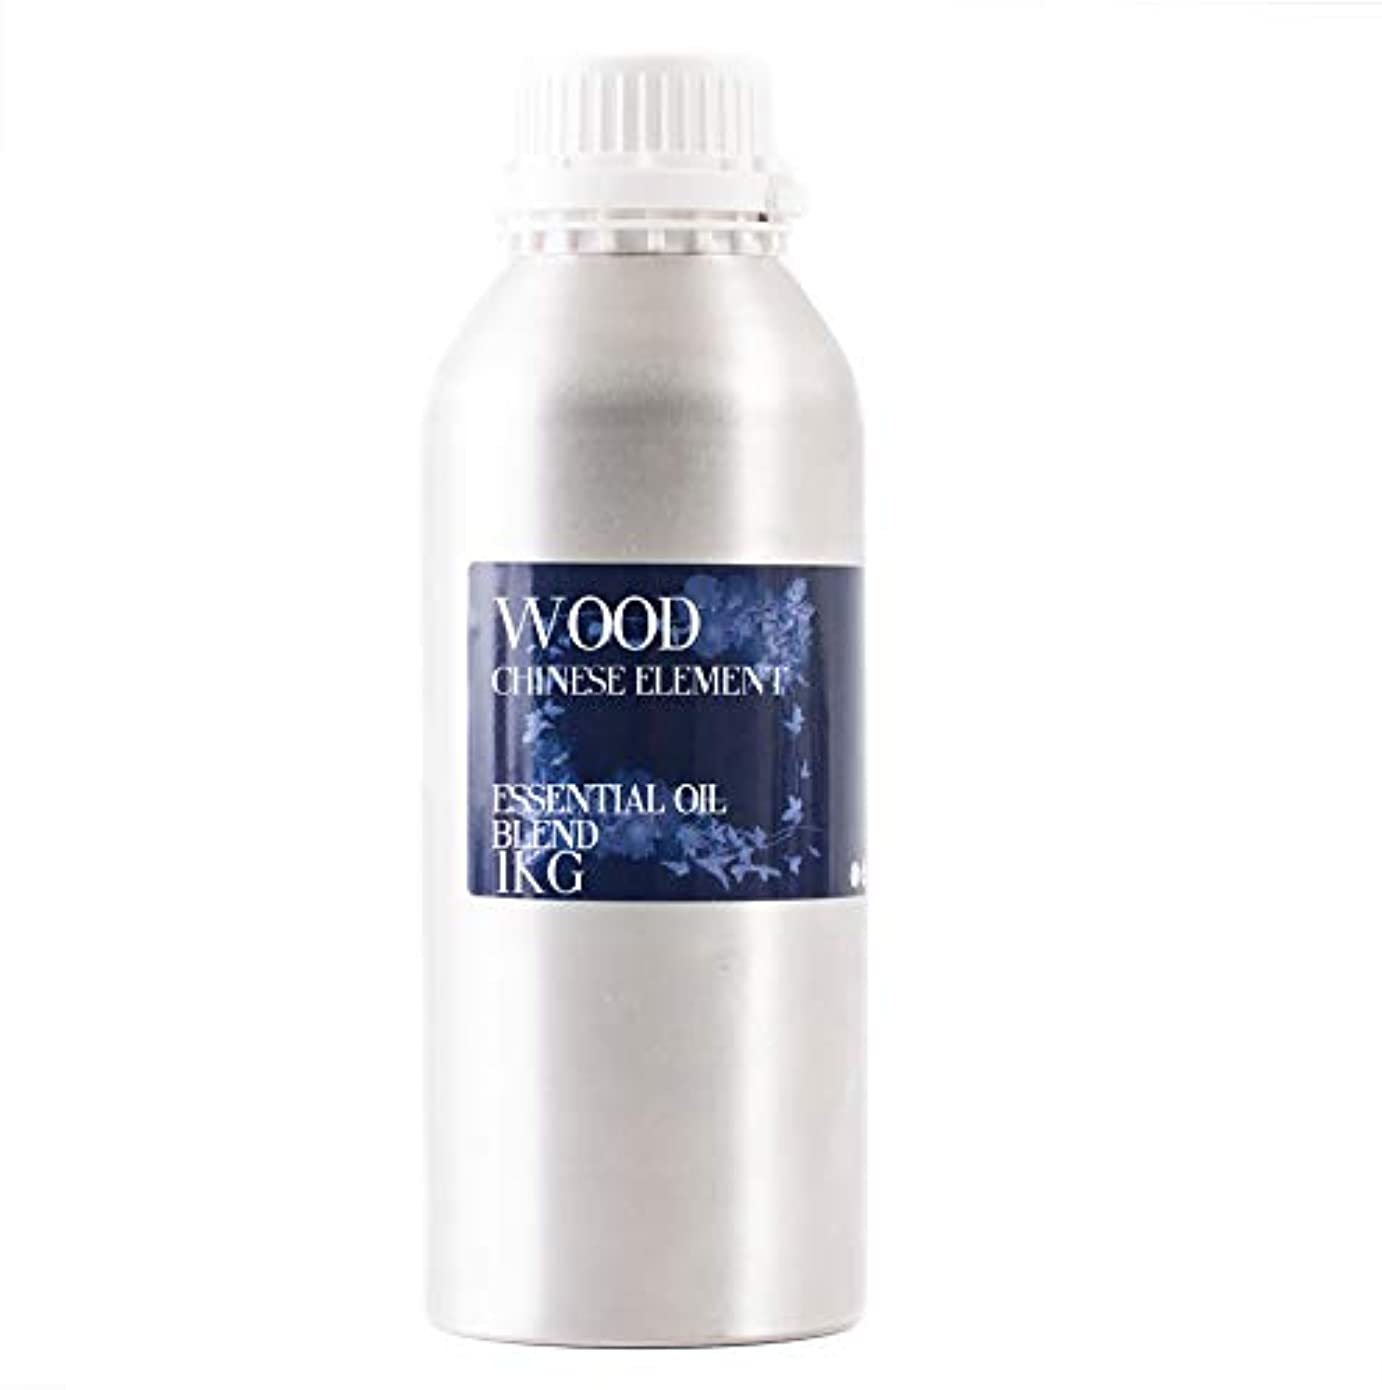 歪めるブルゴーニュ漏れMystix London | Chinese Wood Element Essential Oil Blend - 1Kg